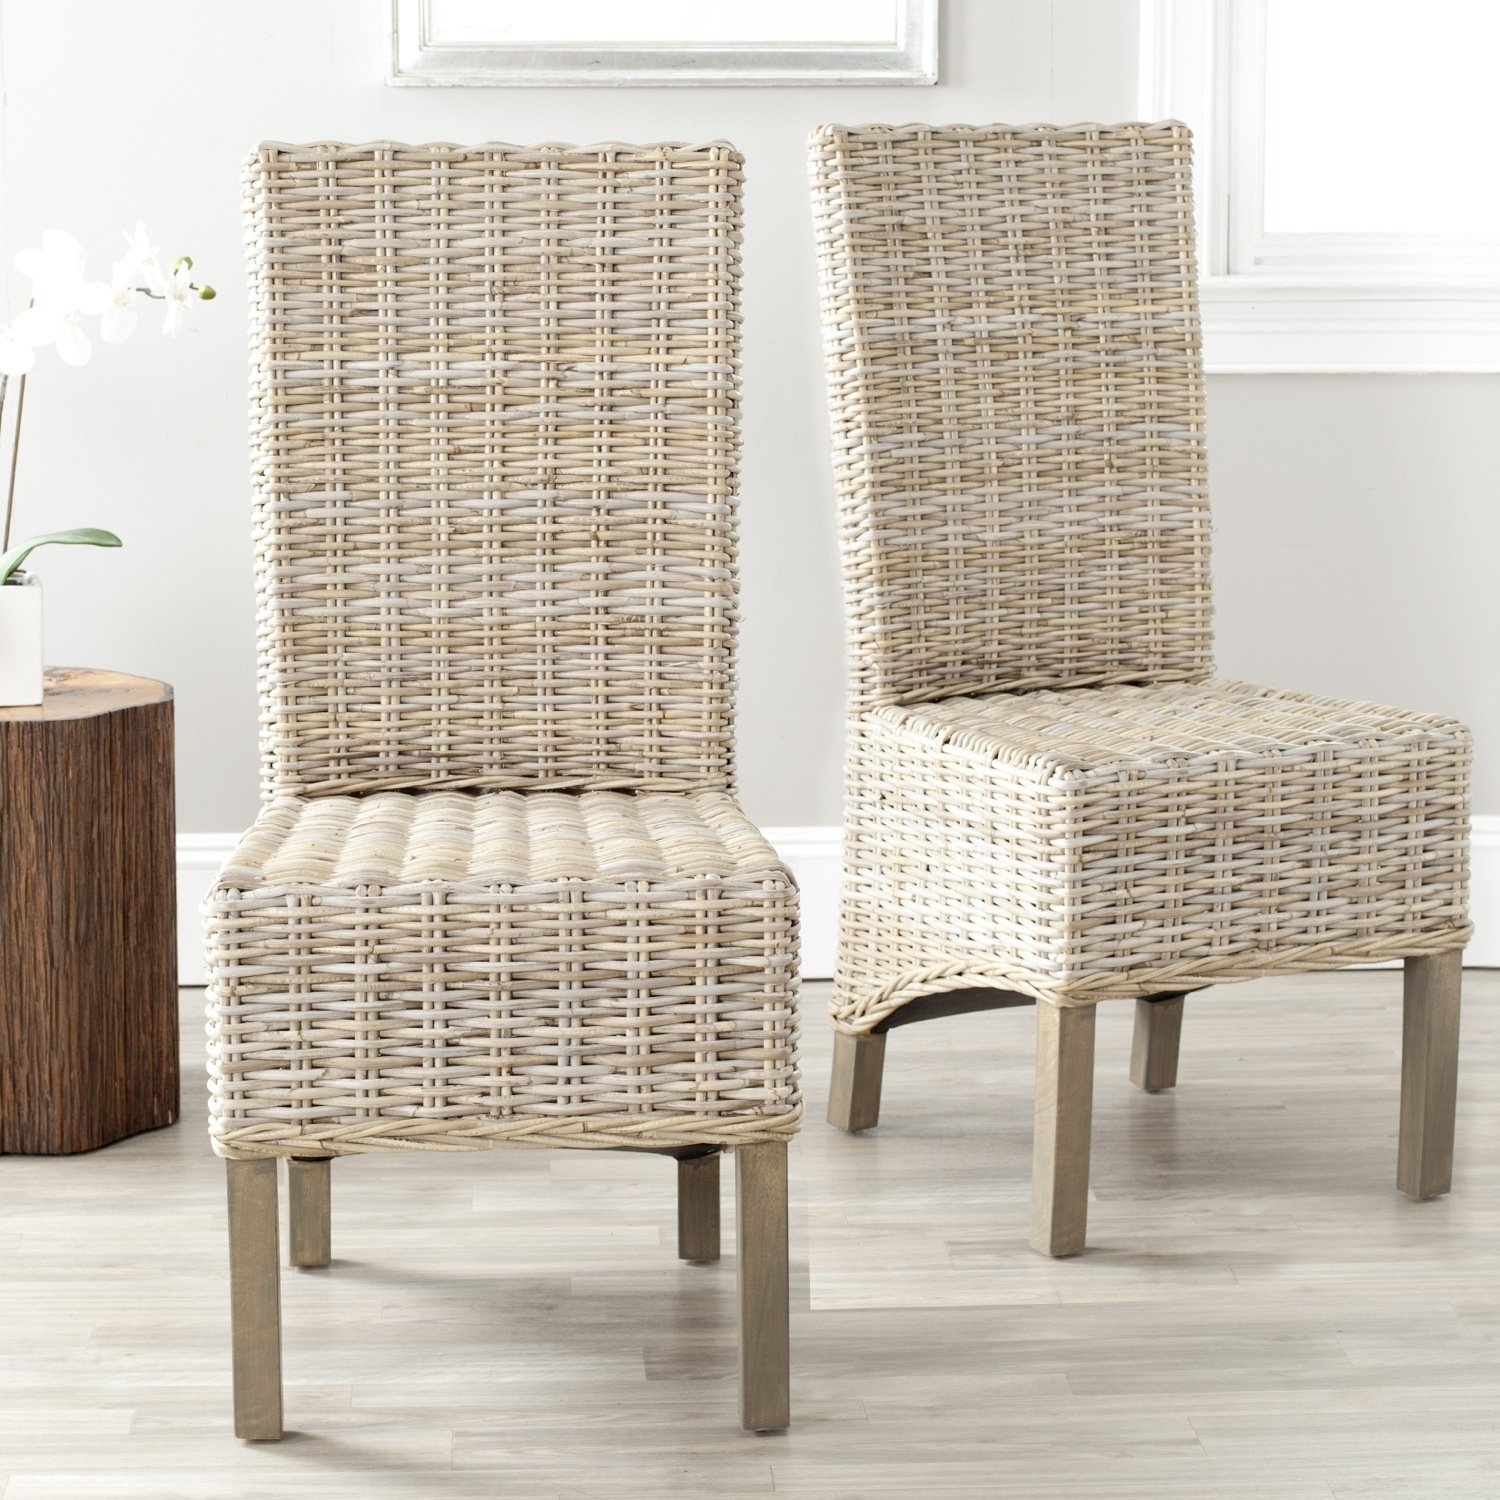 Amazon.com: Safavieh Home Collection Pembrooke Wicker Side Chairs ...